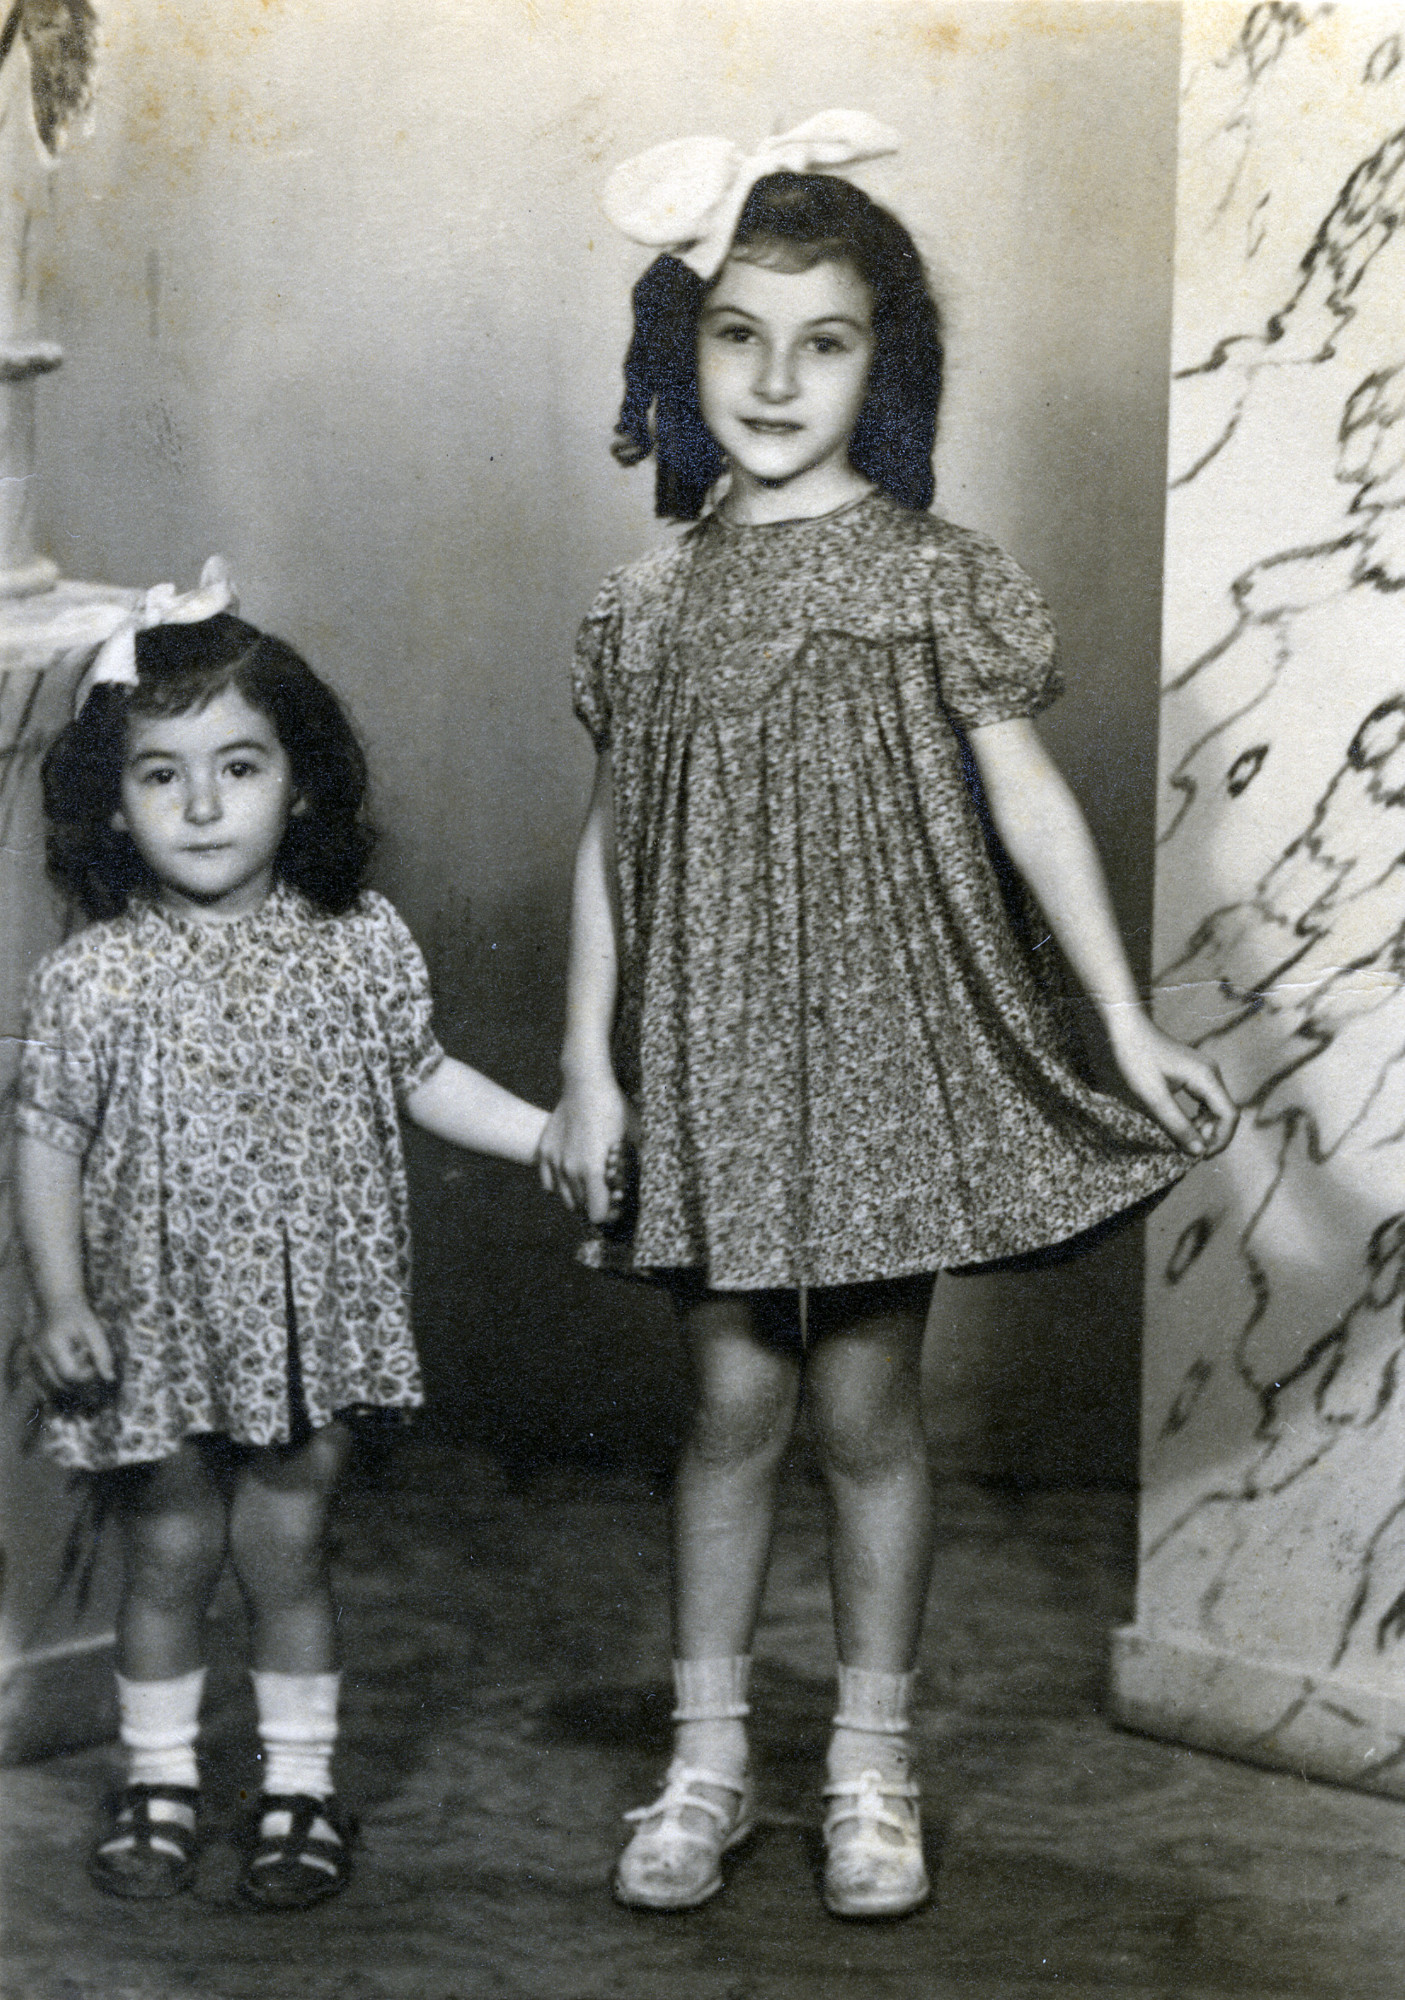 Studio portrait of Ella and Rina Fransevic in postwar Skopje.